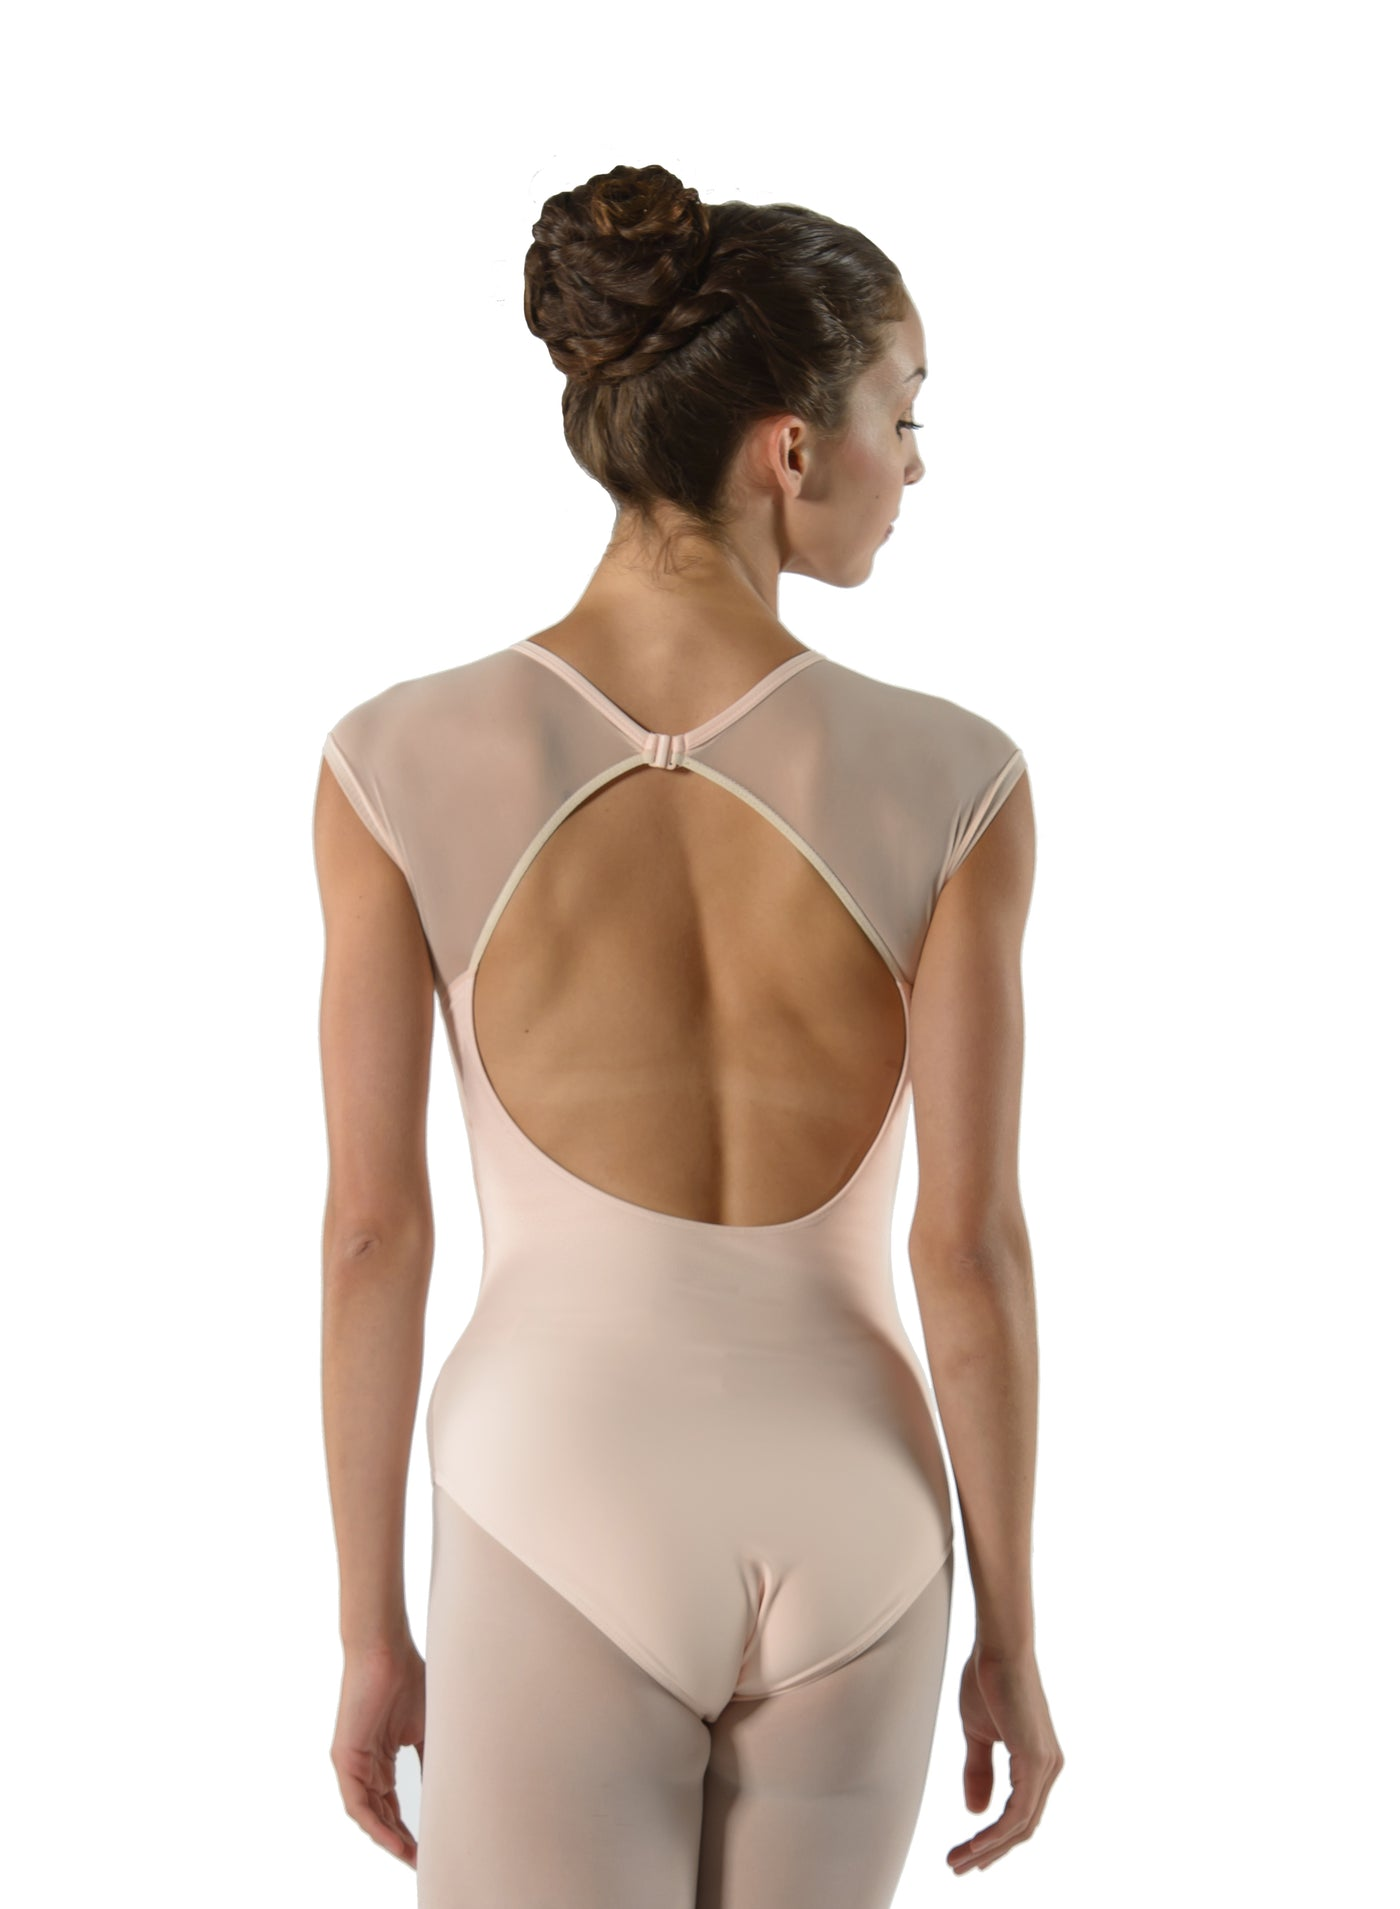 Gladys Cap Sleeve Leotard with Lace Panel - Child